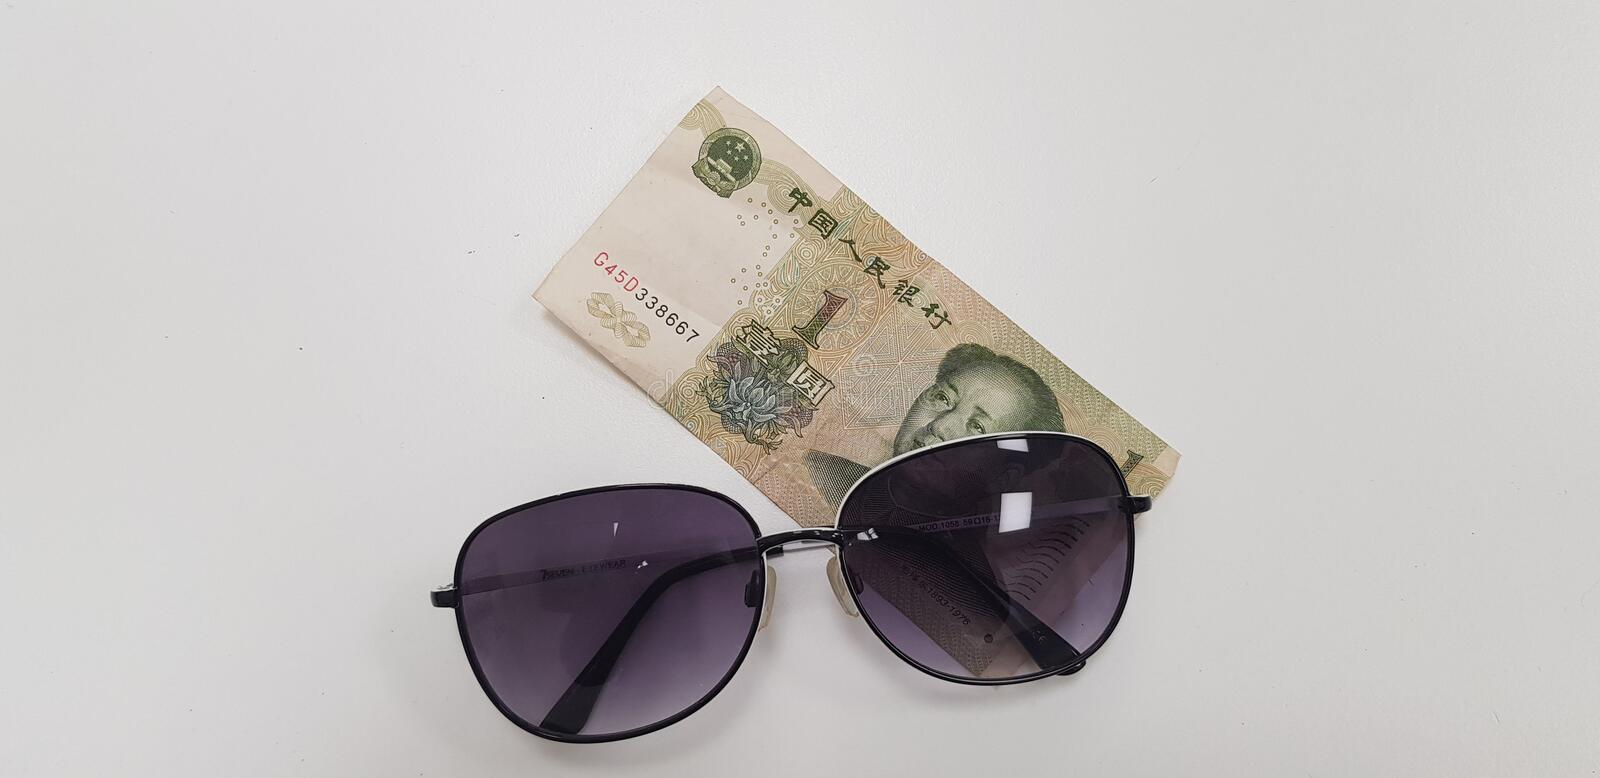 One yuan banknote on white table. Sunglasses lay on one yinhang banknote on white table bookmaker brokerage budget business capital china currency day earn stock images